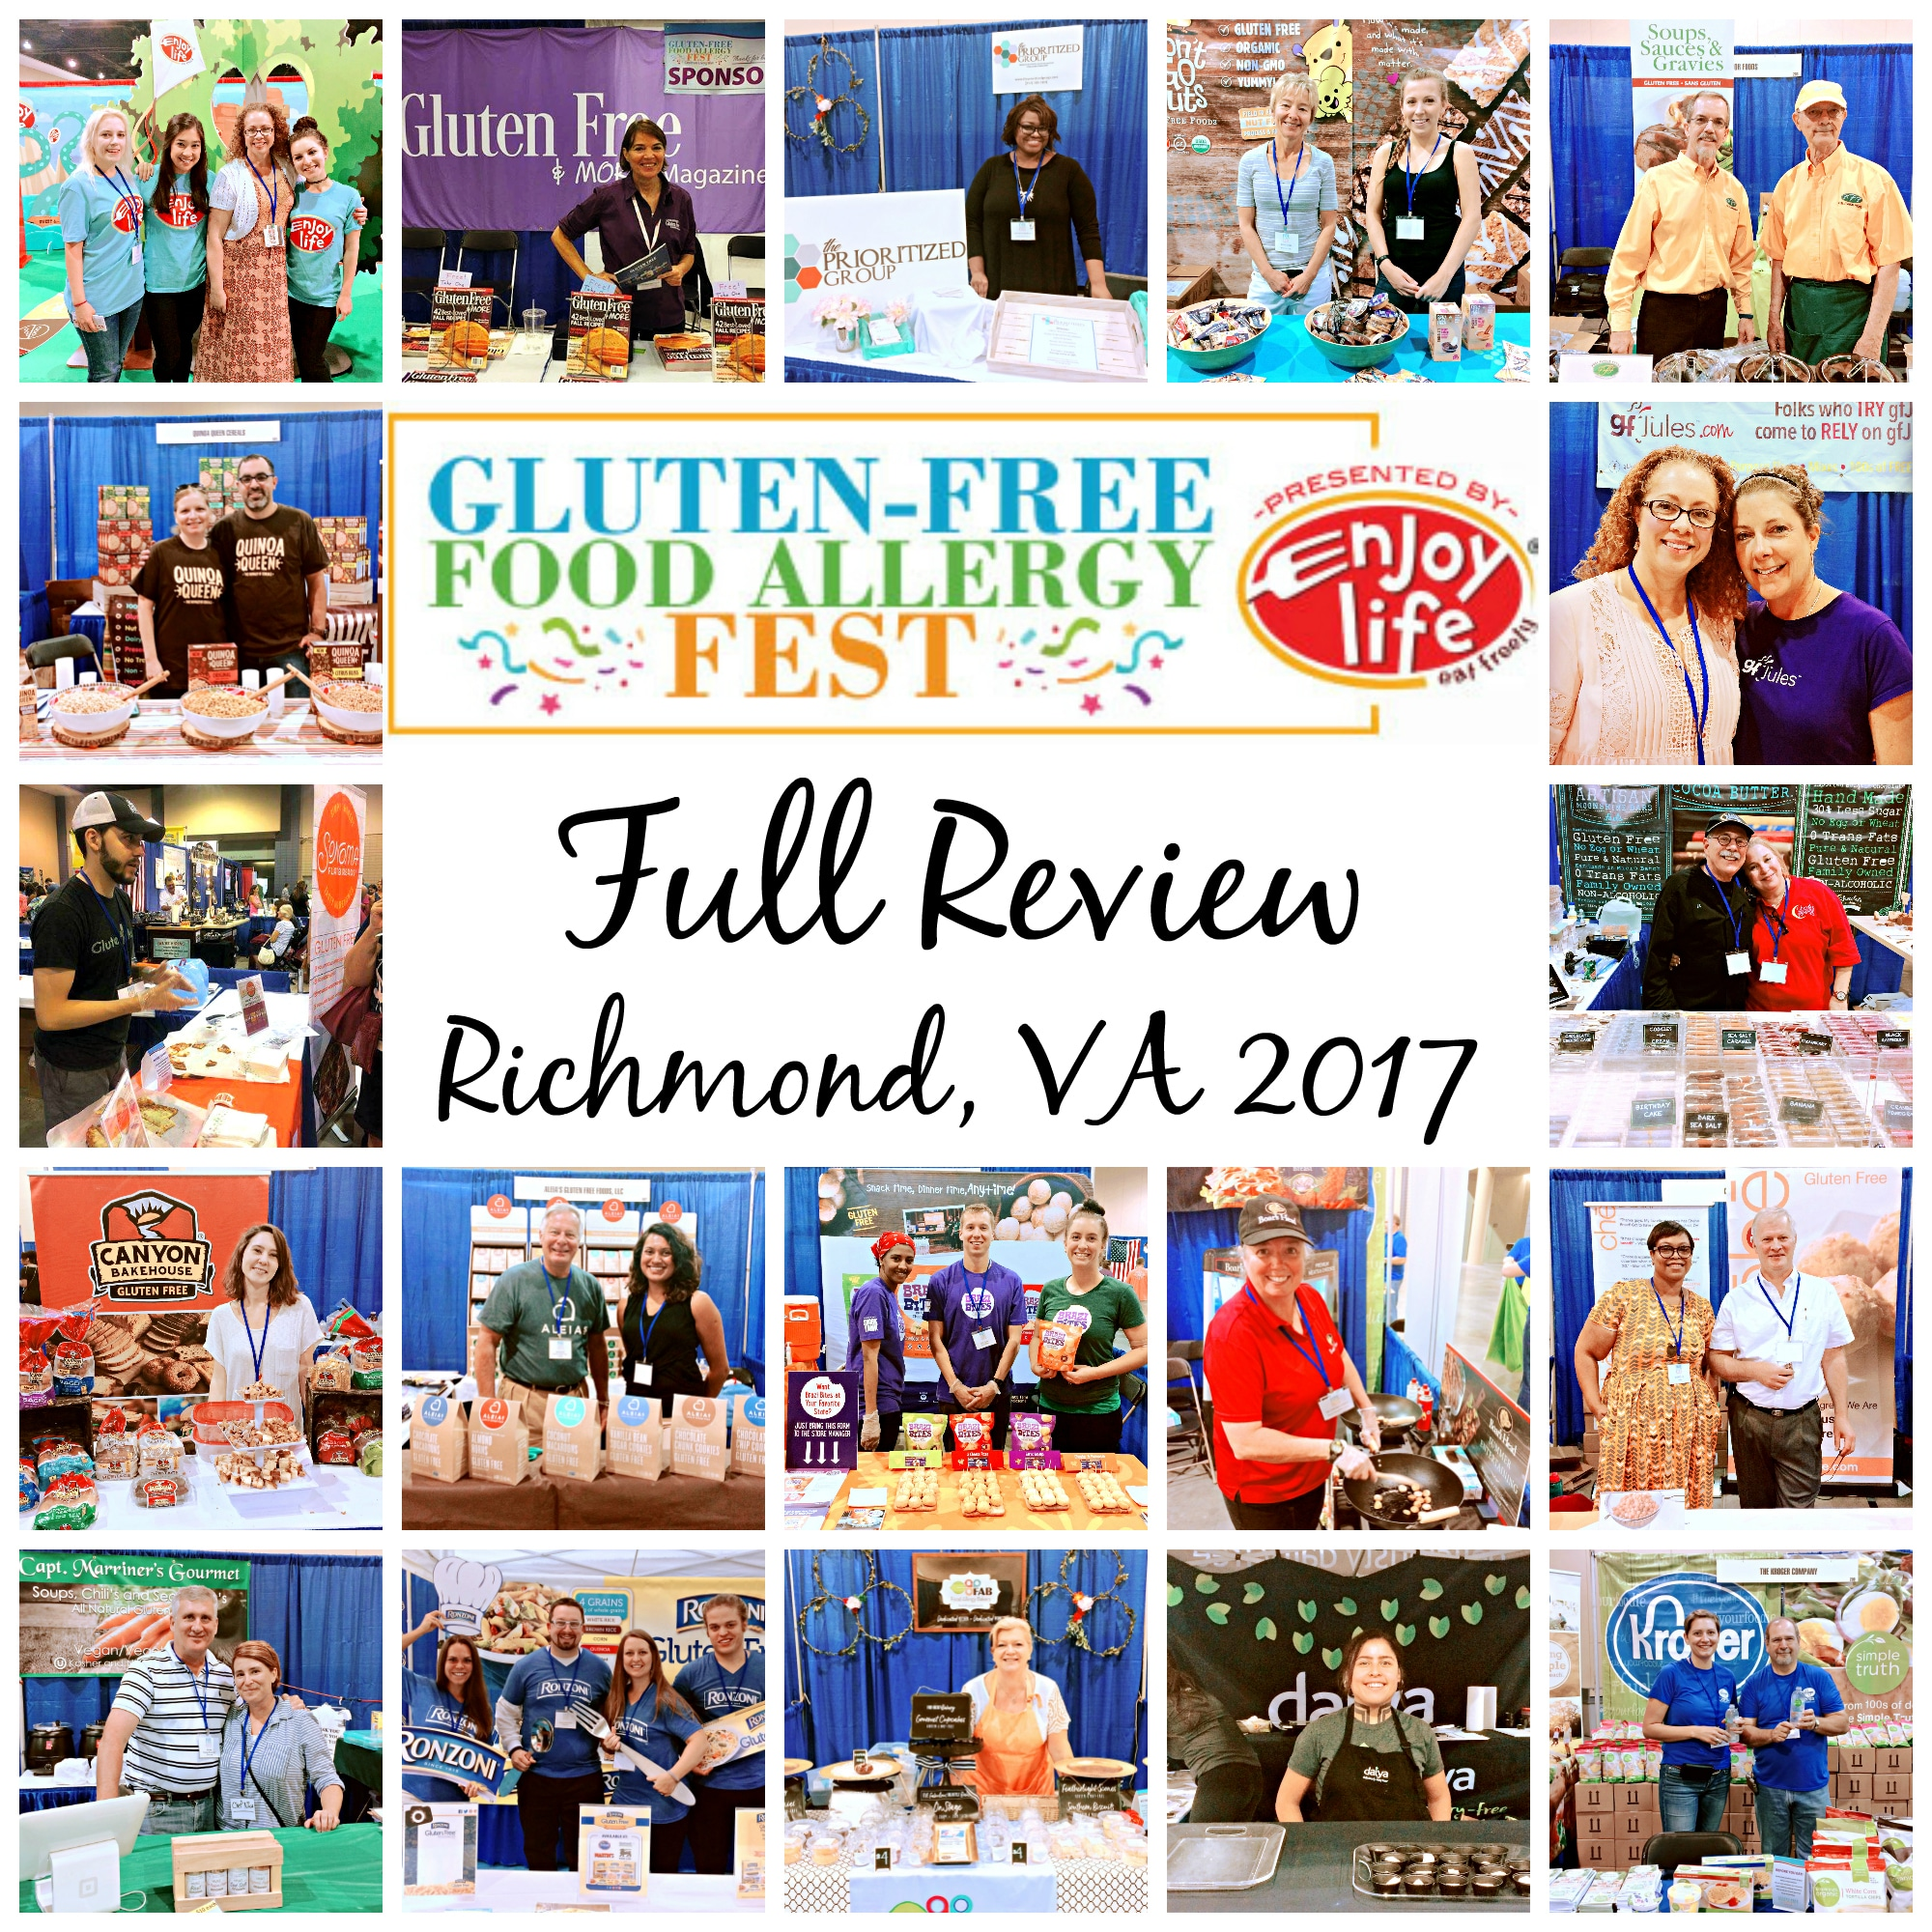 Gluten-Free Food Allergy Fest Review 2017